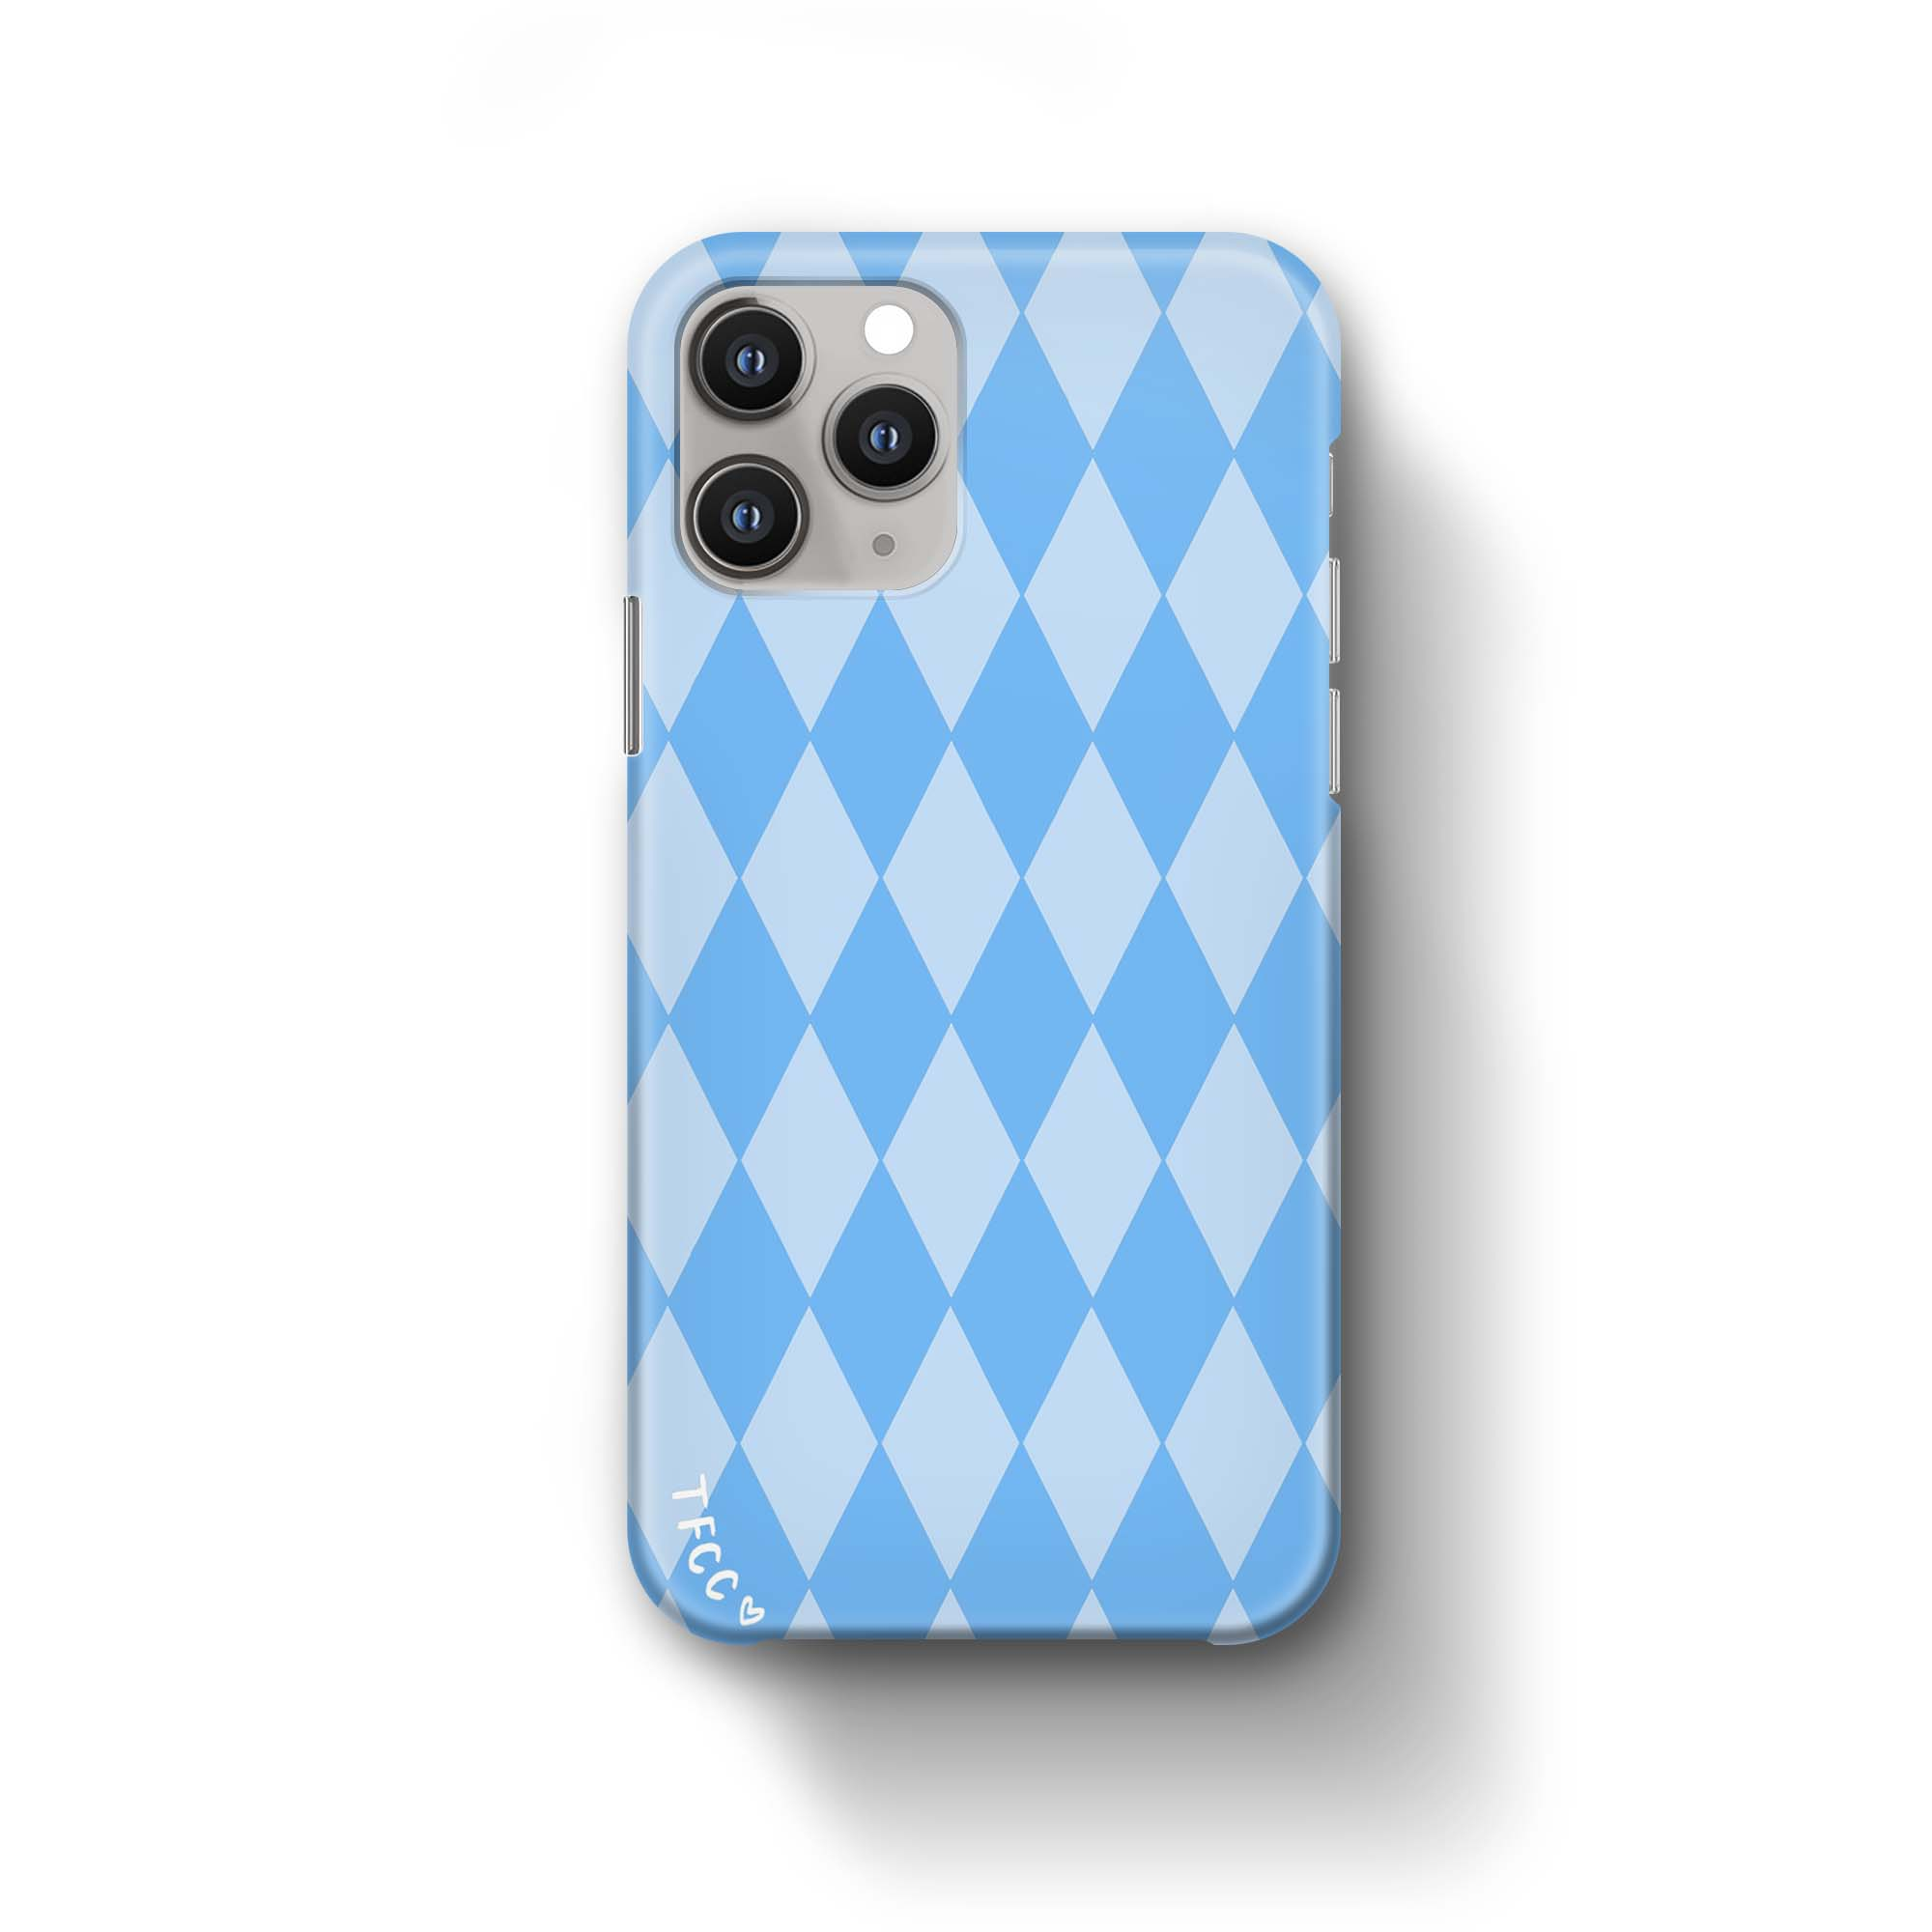 BLUE CHECK CASE - thefonecasecompany